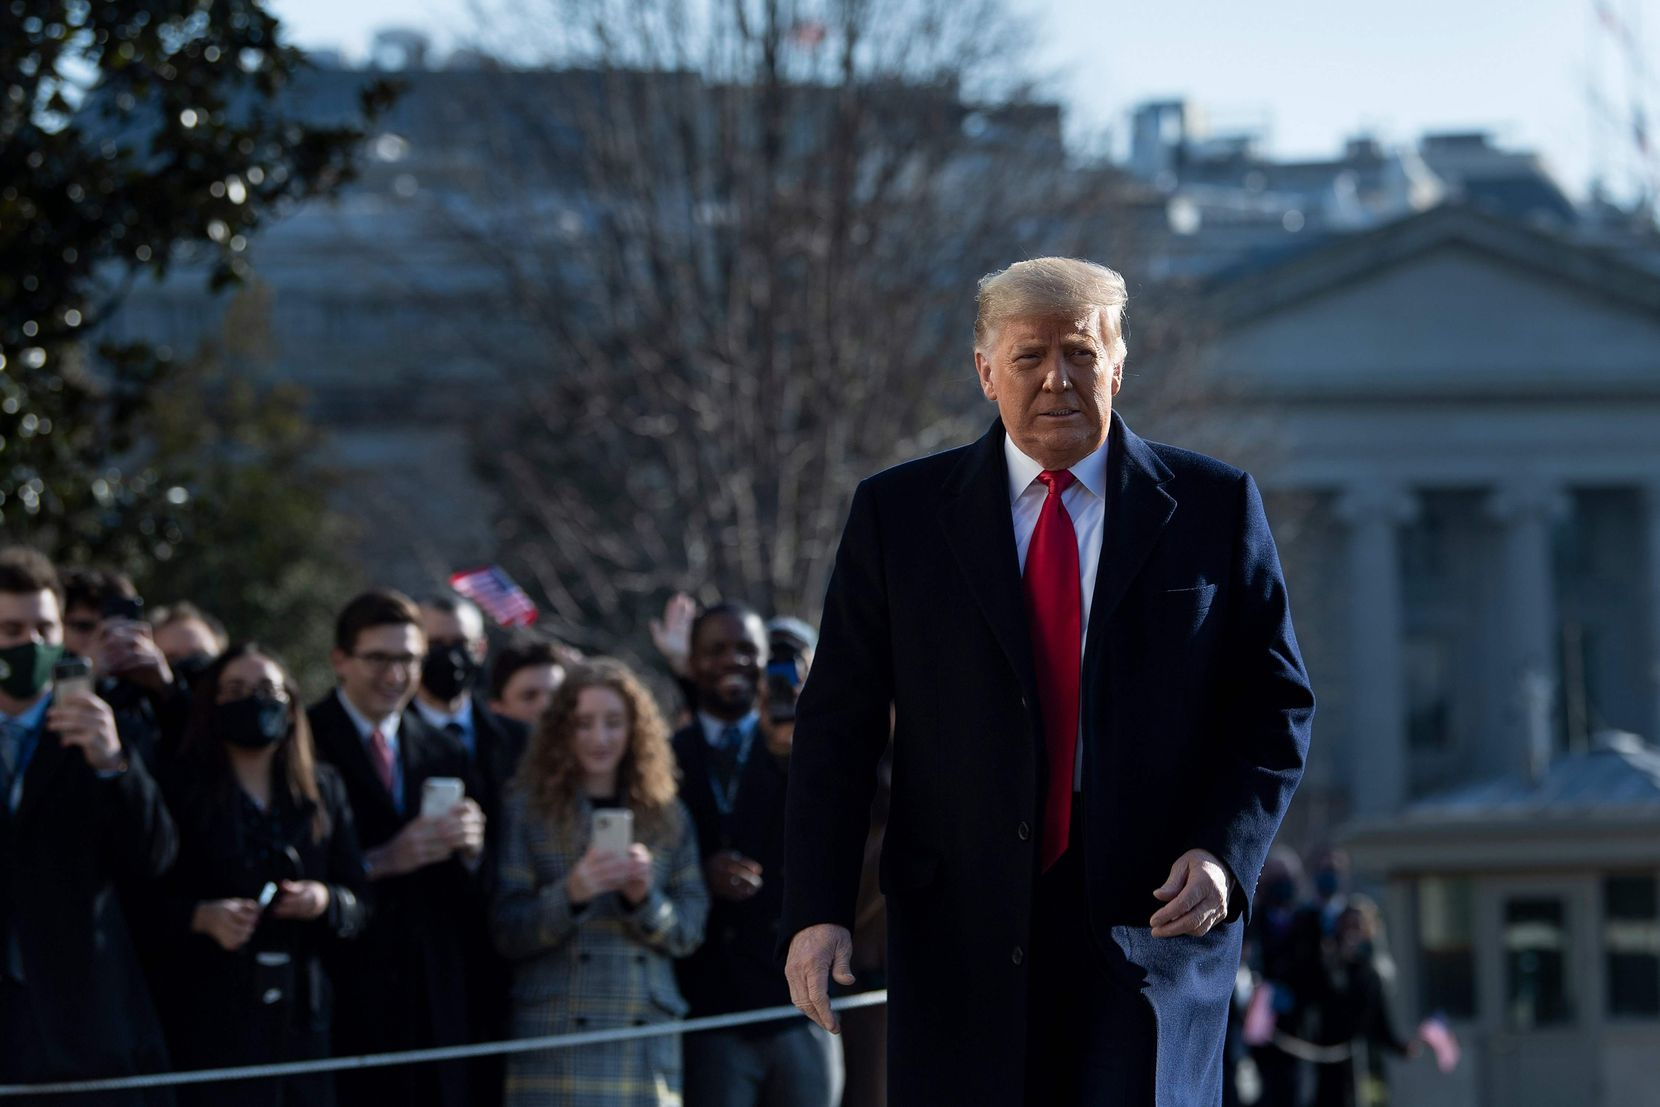 President Donald Trump walked by supporters outside the White House on Jan. 12. (Brendan Smialowski/AFP)